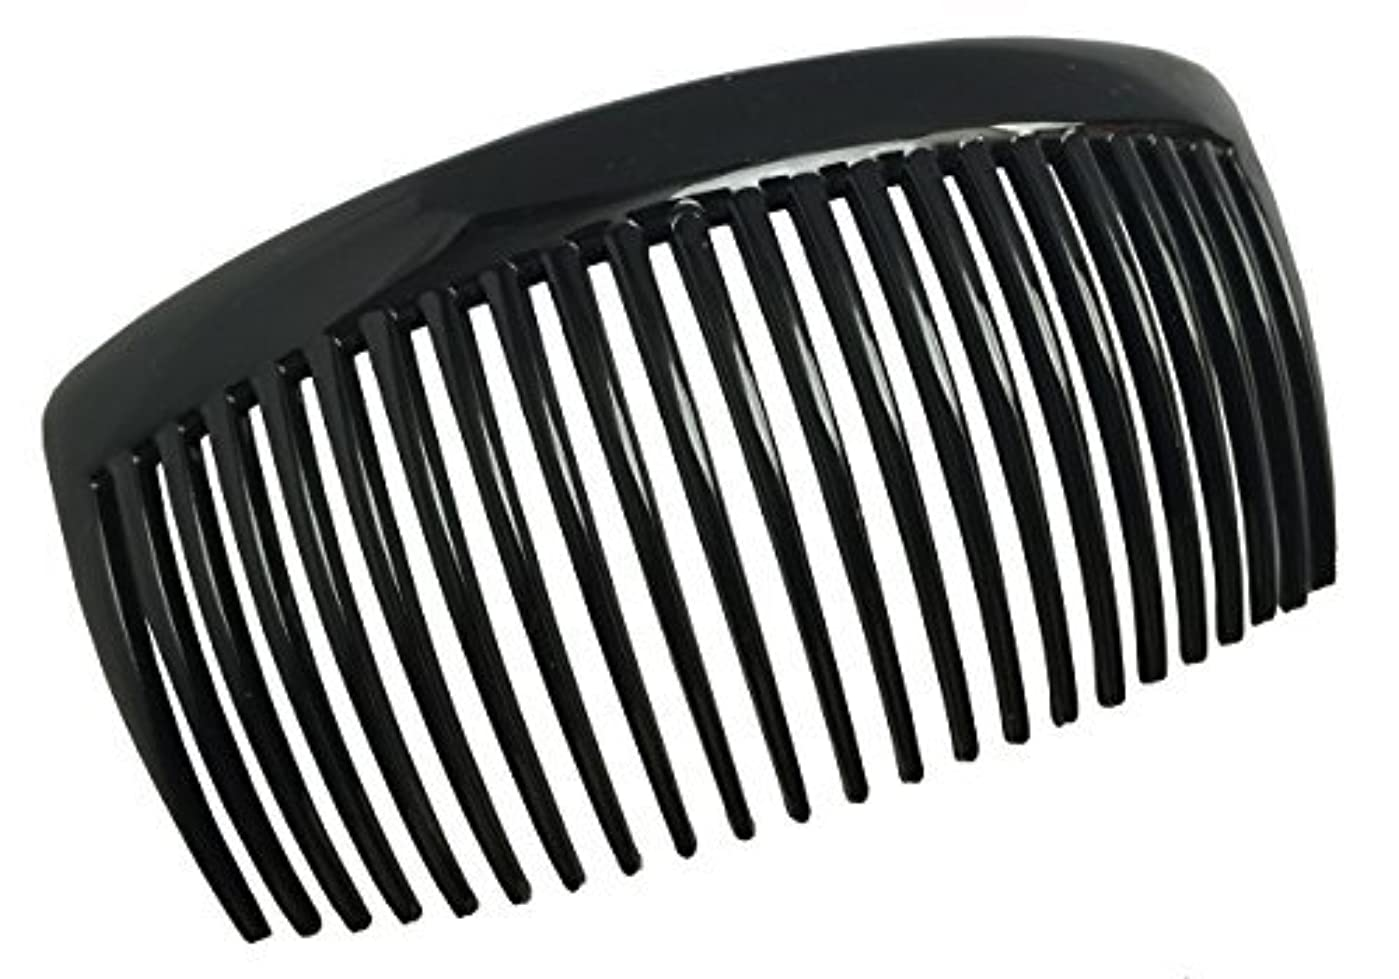 Parcelona French Large 2 Pieces Glossy Black Cellulose Acetate Good Grip Updo 23 Teeth Hair Side Combs 4.25 Inches...